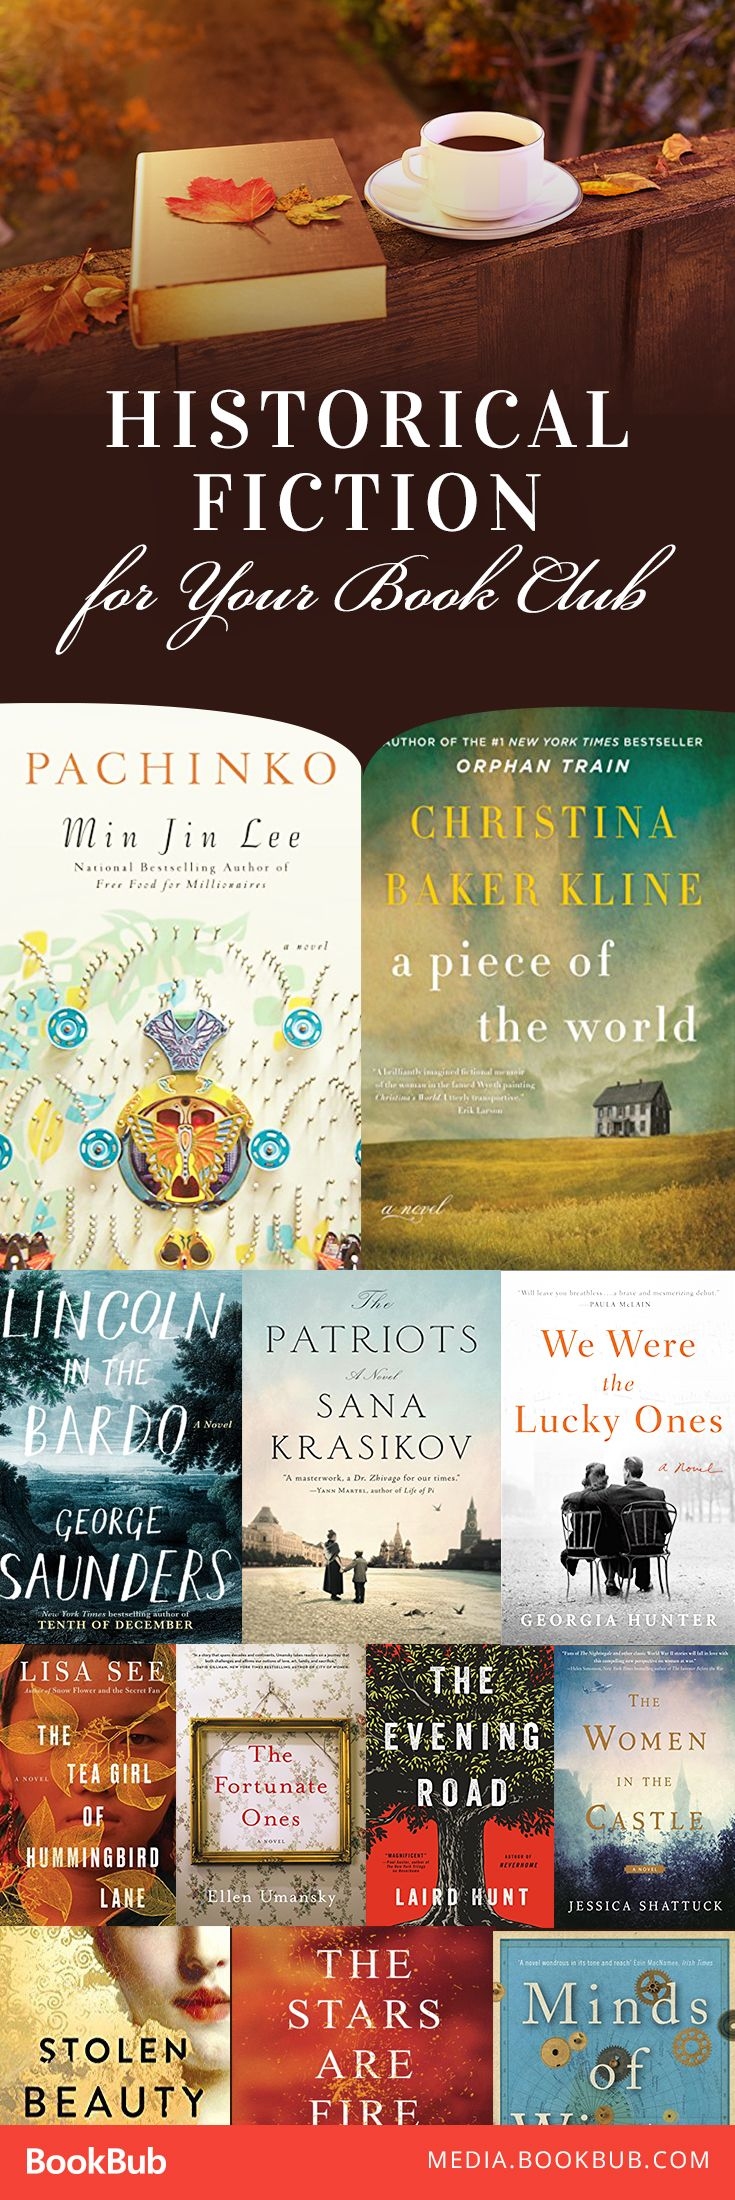 15 Historical Fiction Reads Your Book Club Will Love With Images